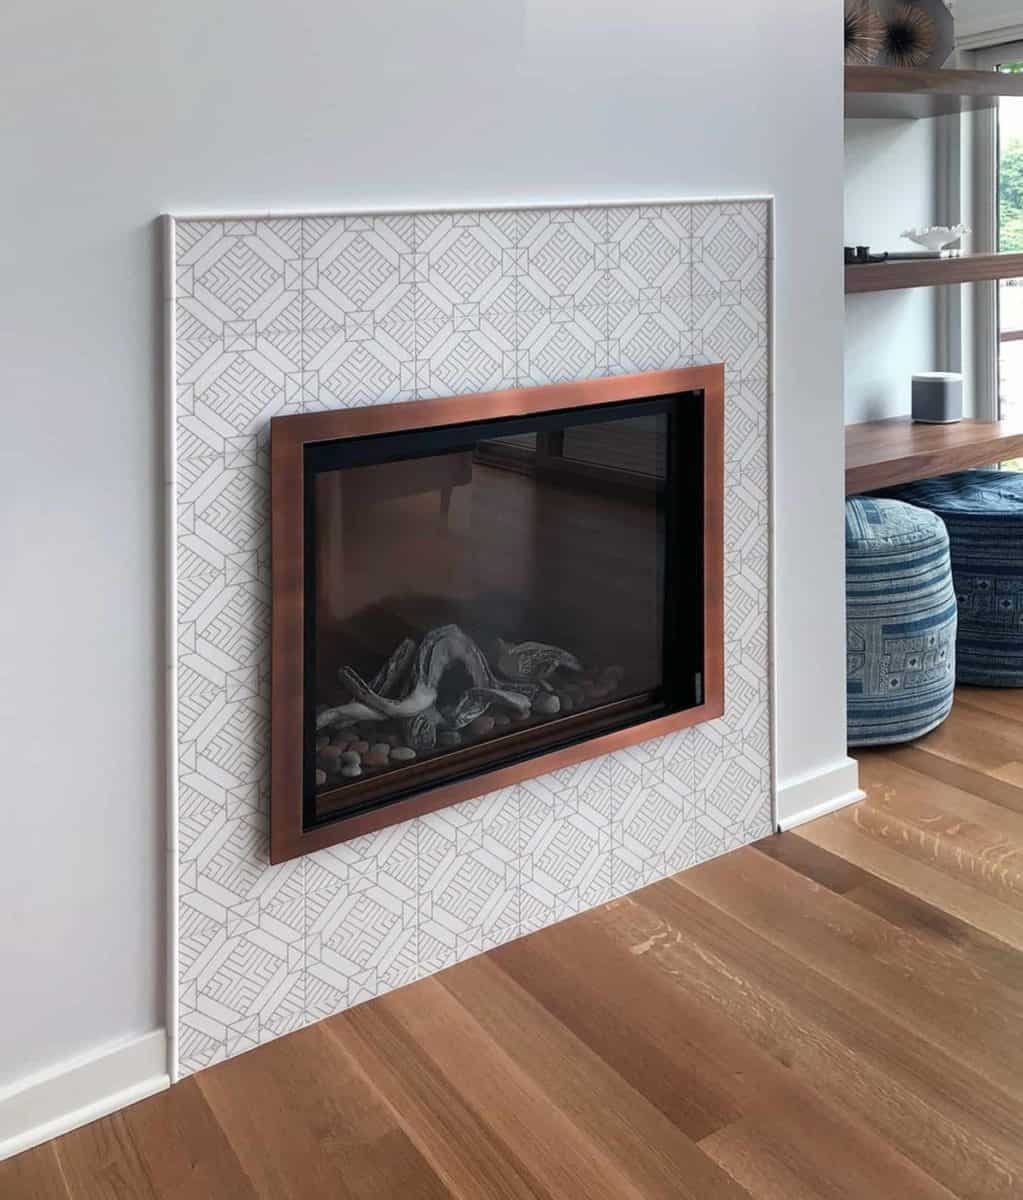 Aurum tile on thassos on fireplace